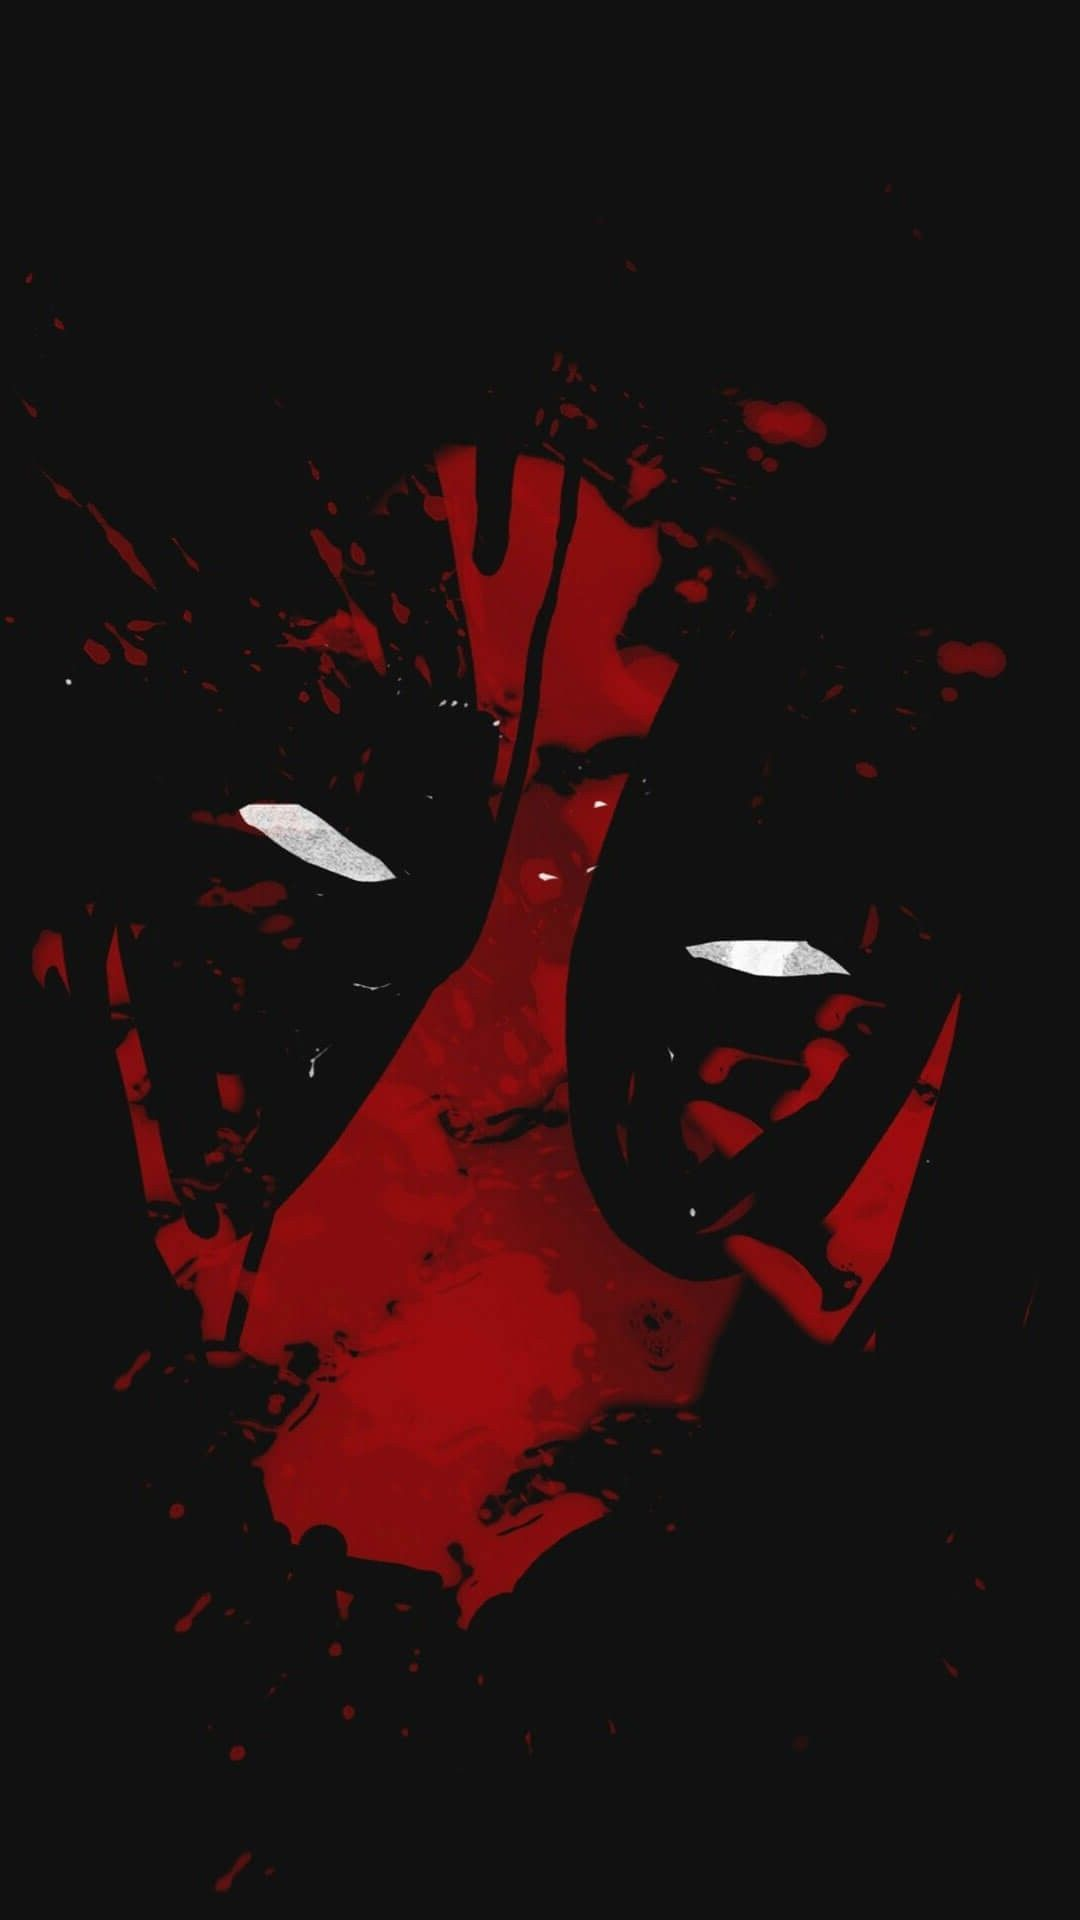 1080x1920 Deadpool Wallpaper Iphone - 2018 iPhone Wallpapers | Deadpool ...